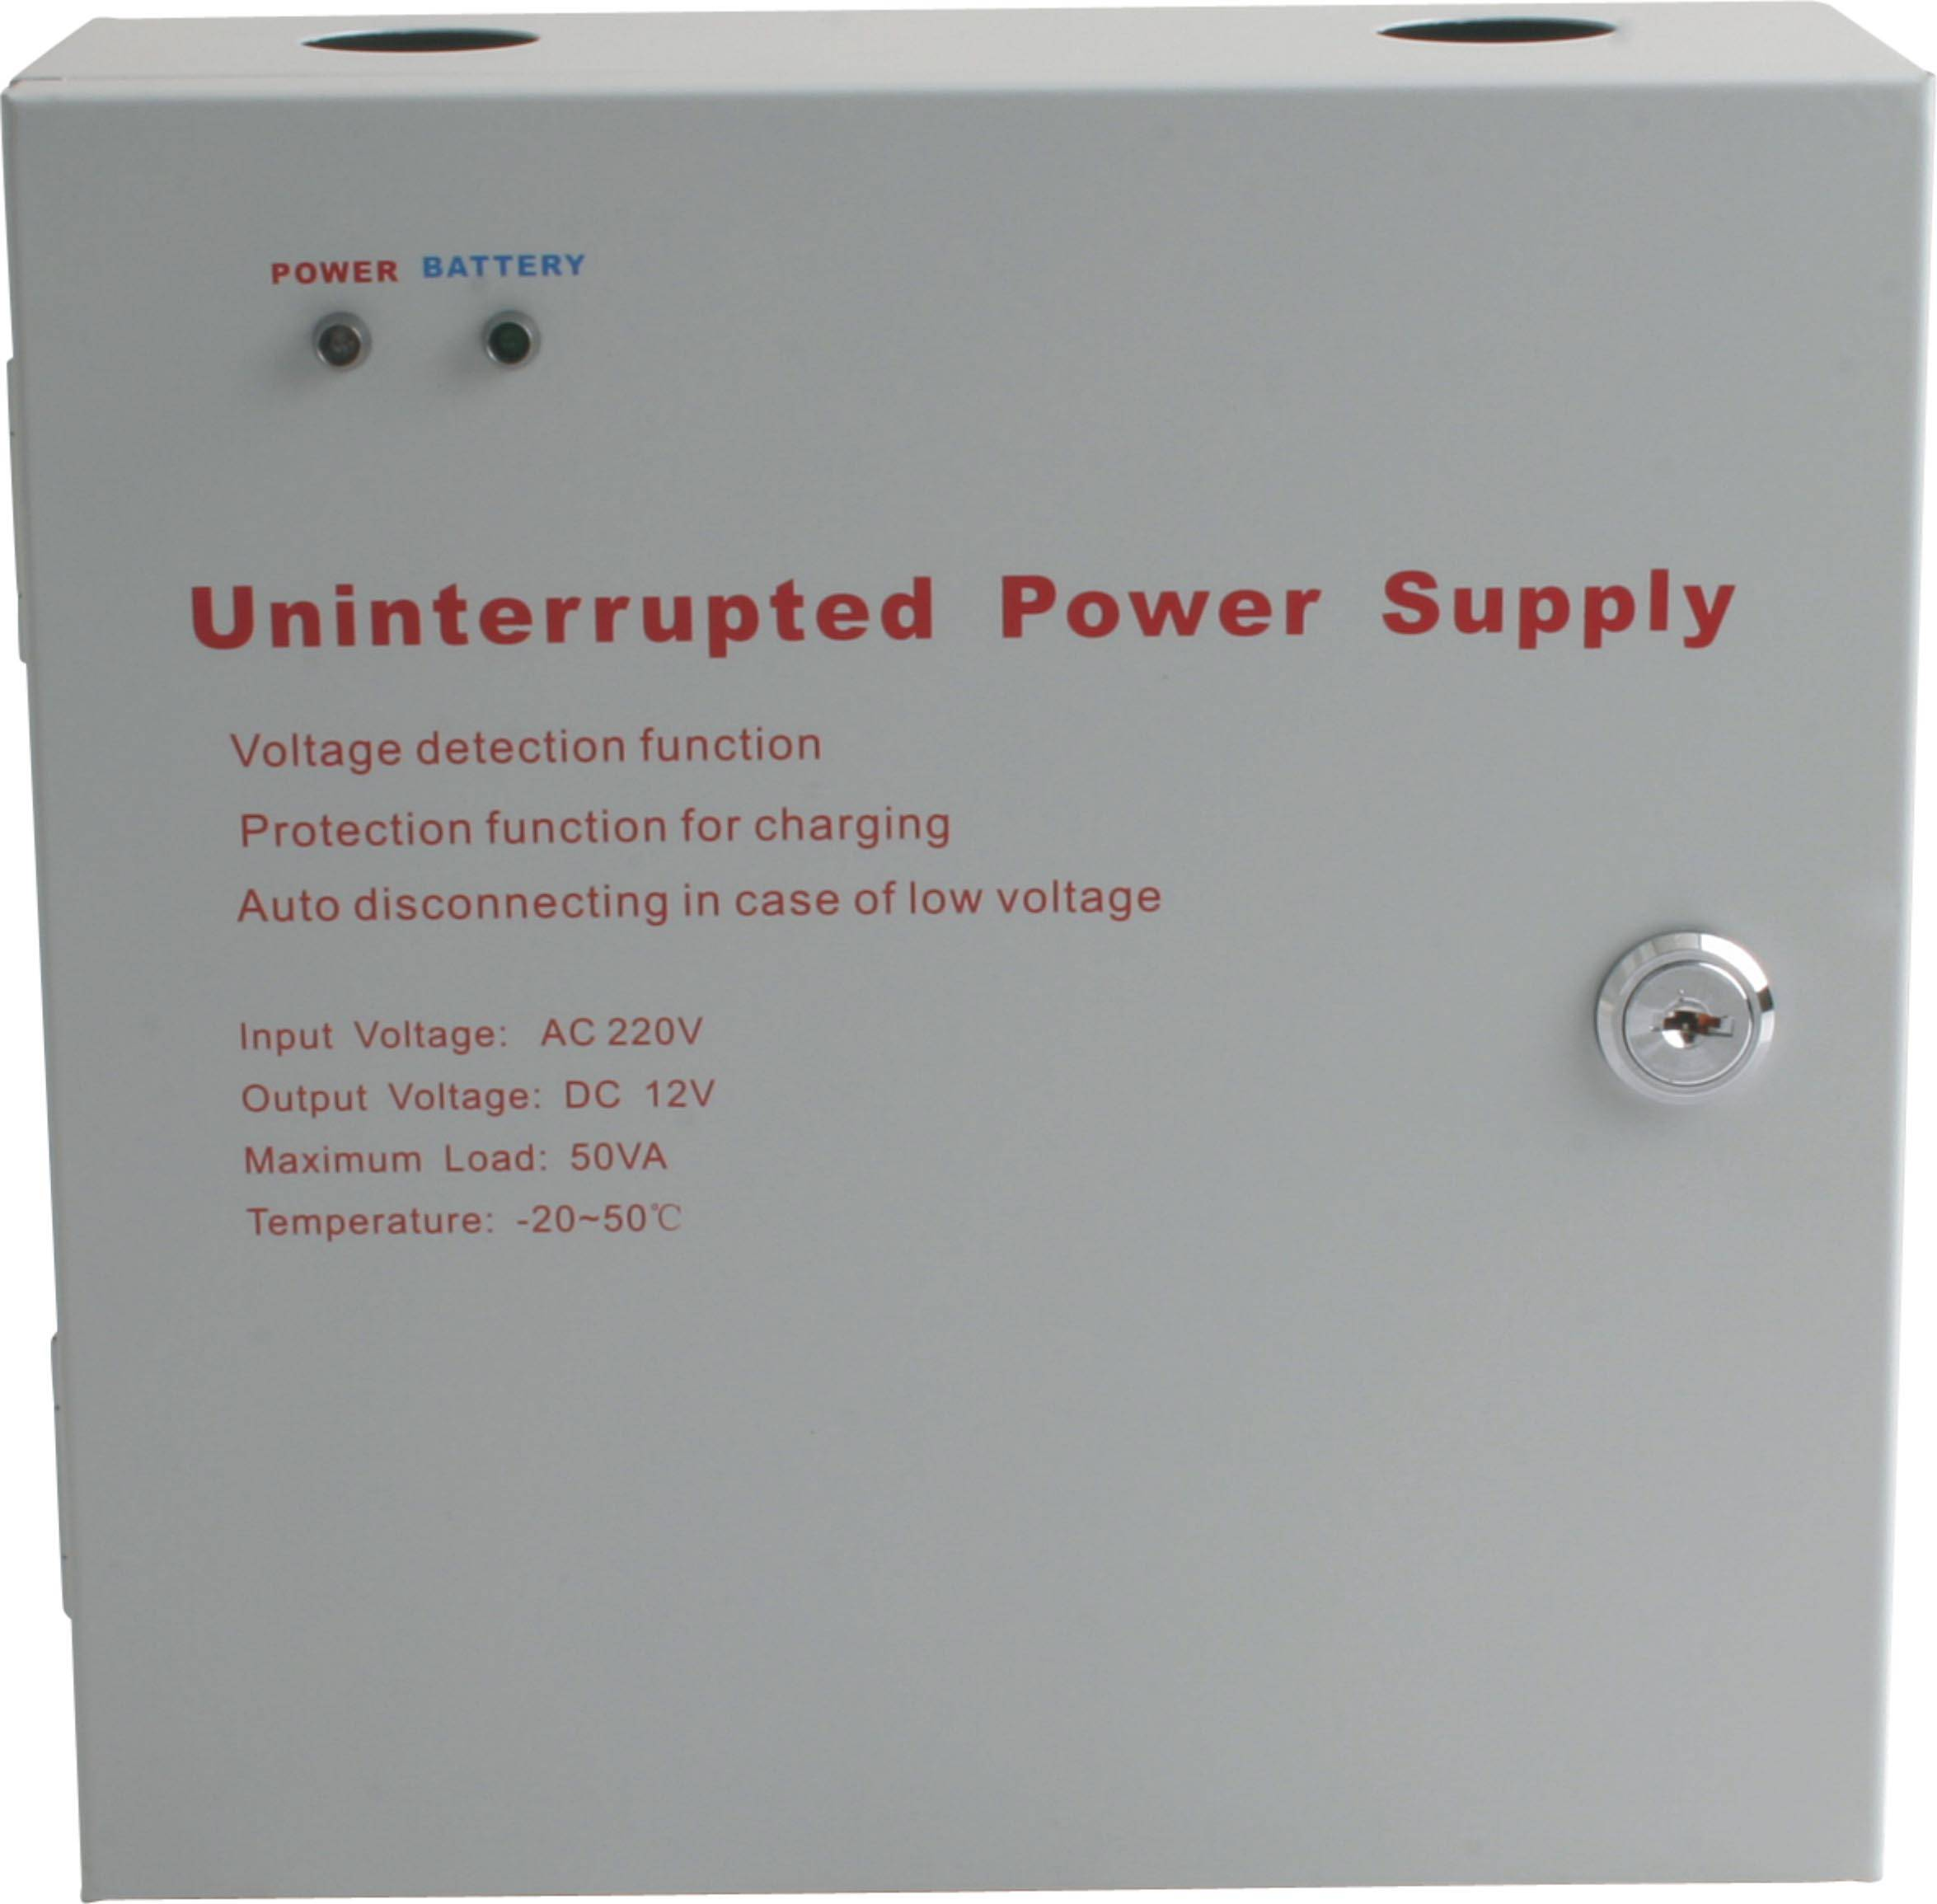 Uninterrupted Power Supply (12V,3A) of access control